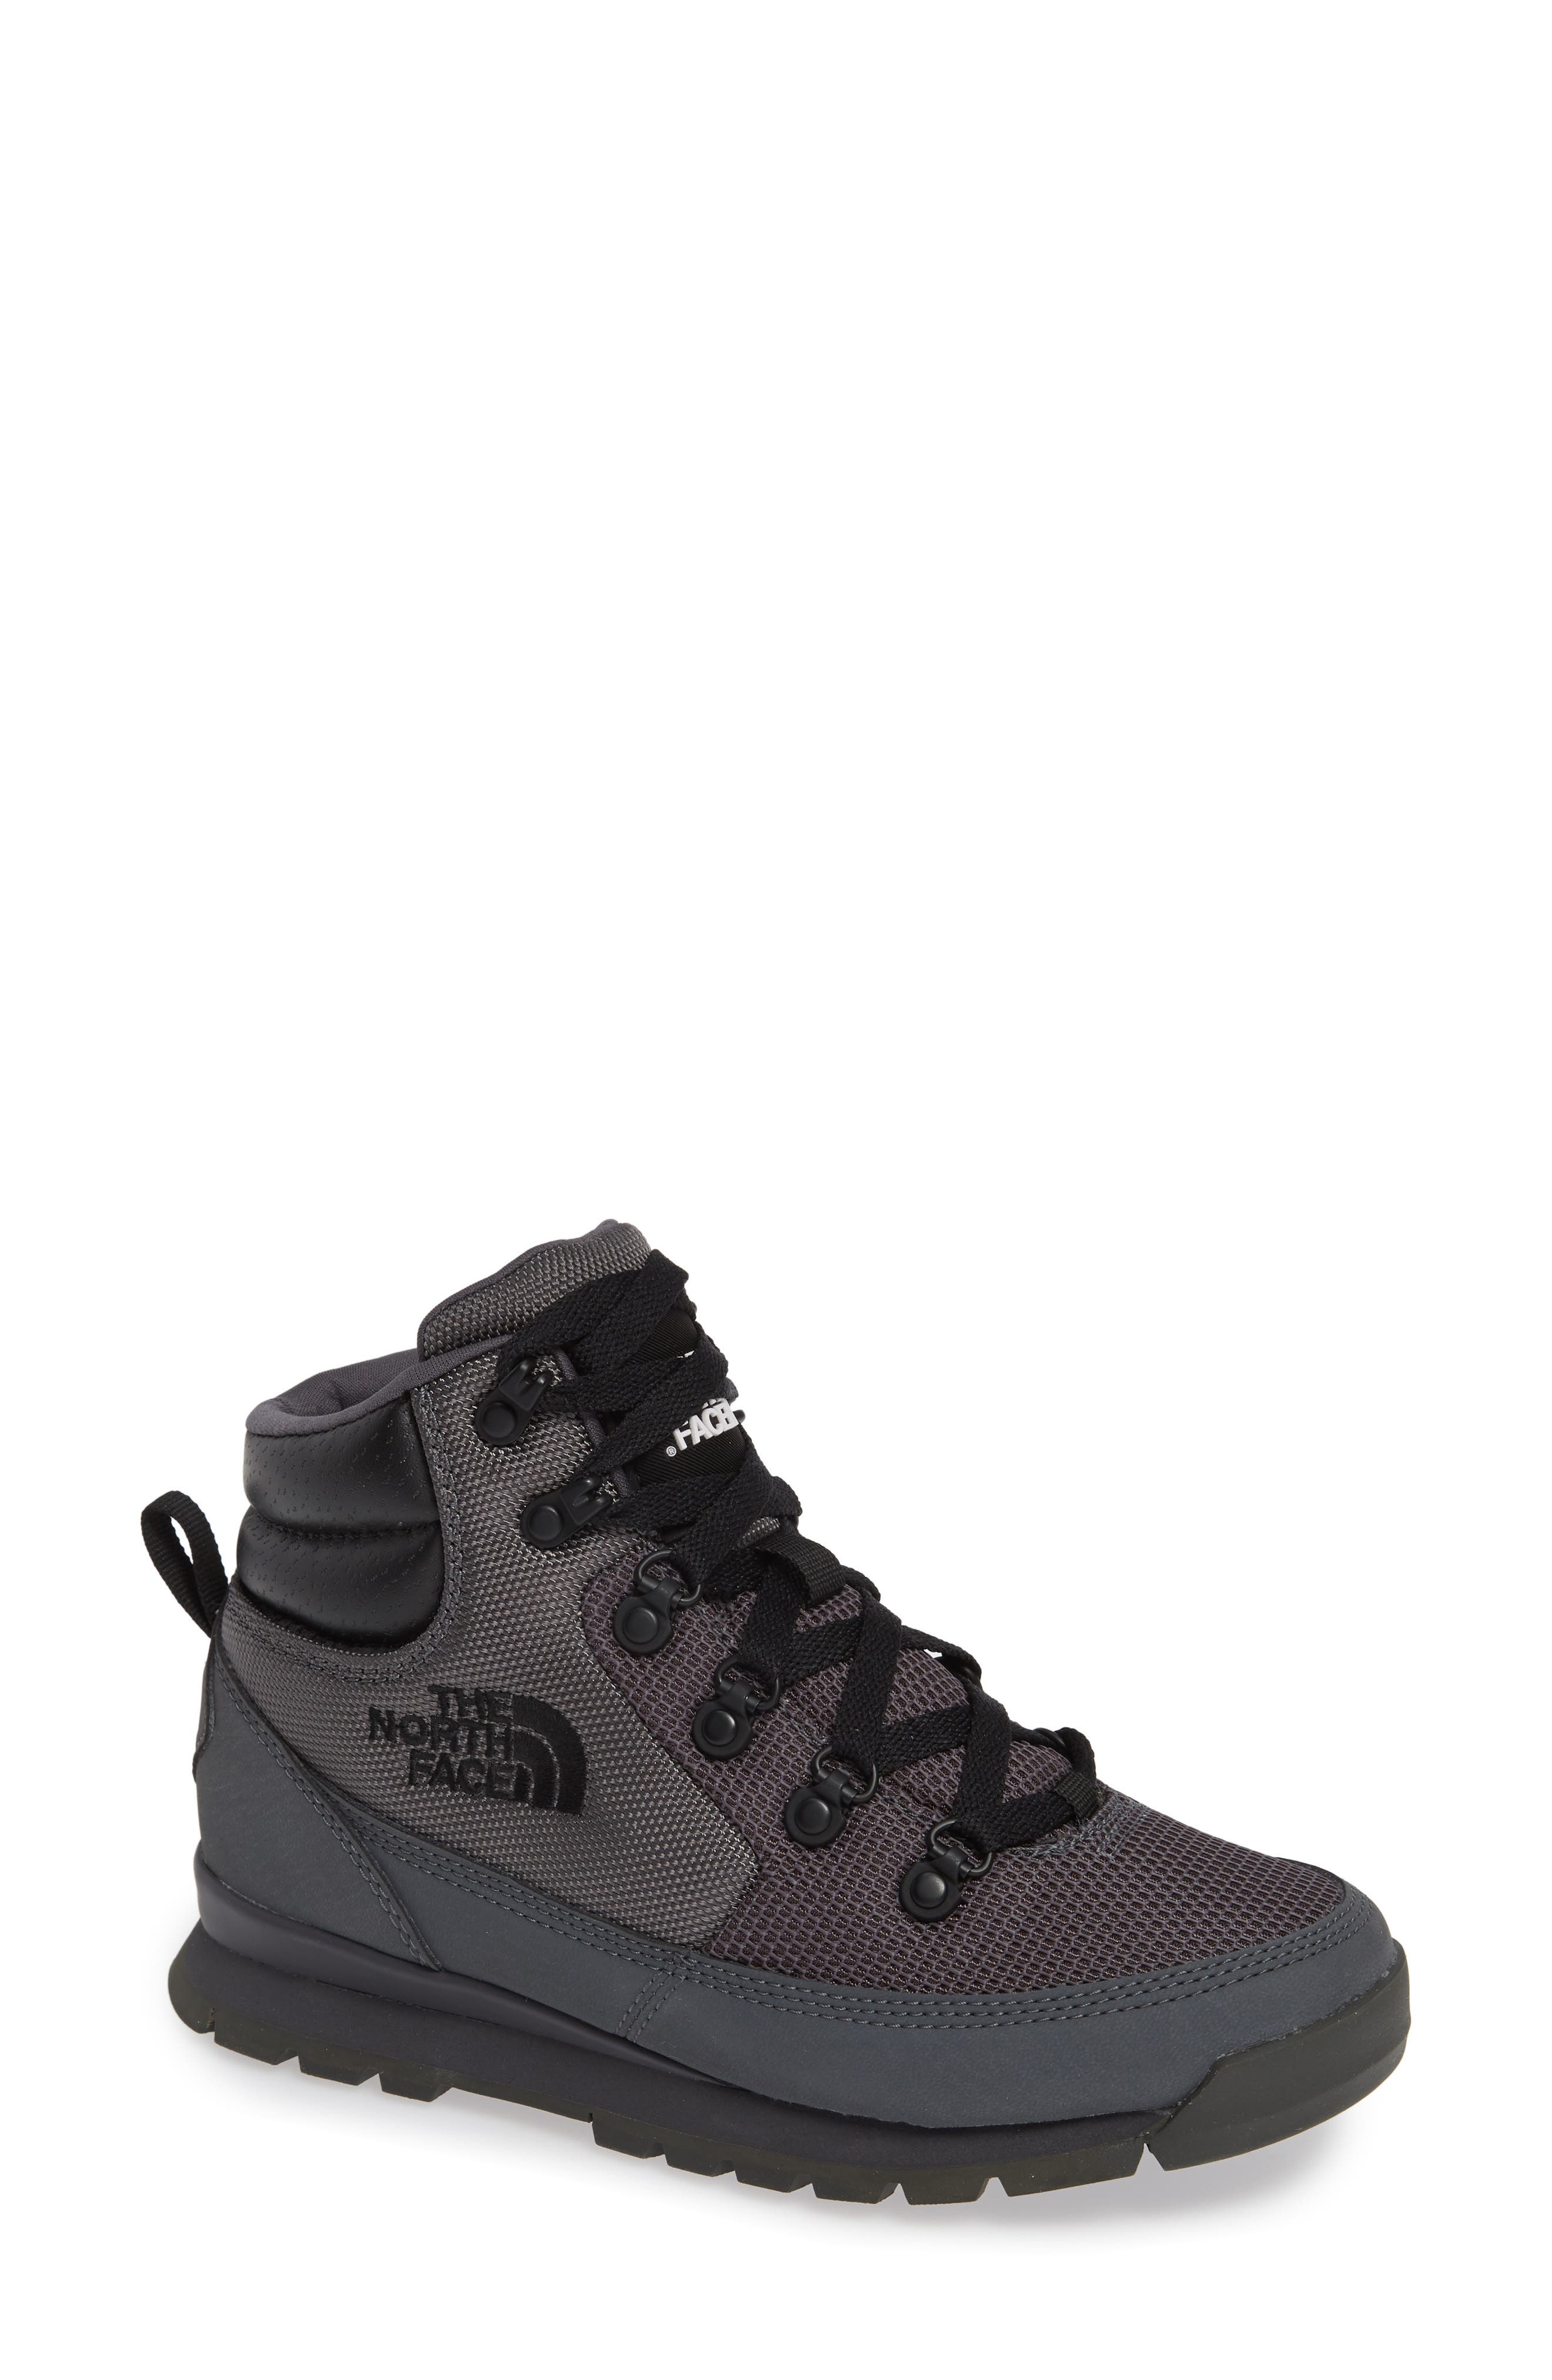 The North Face Back To Berkeley Redux Waterproof Boot- Black